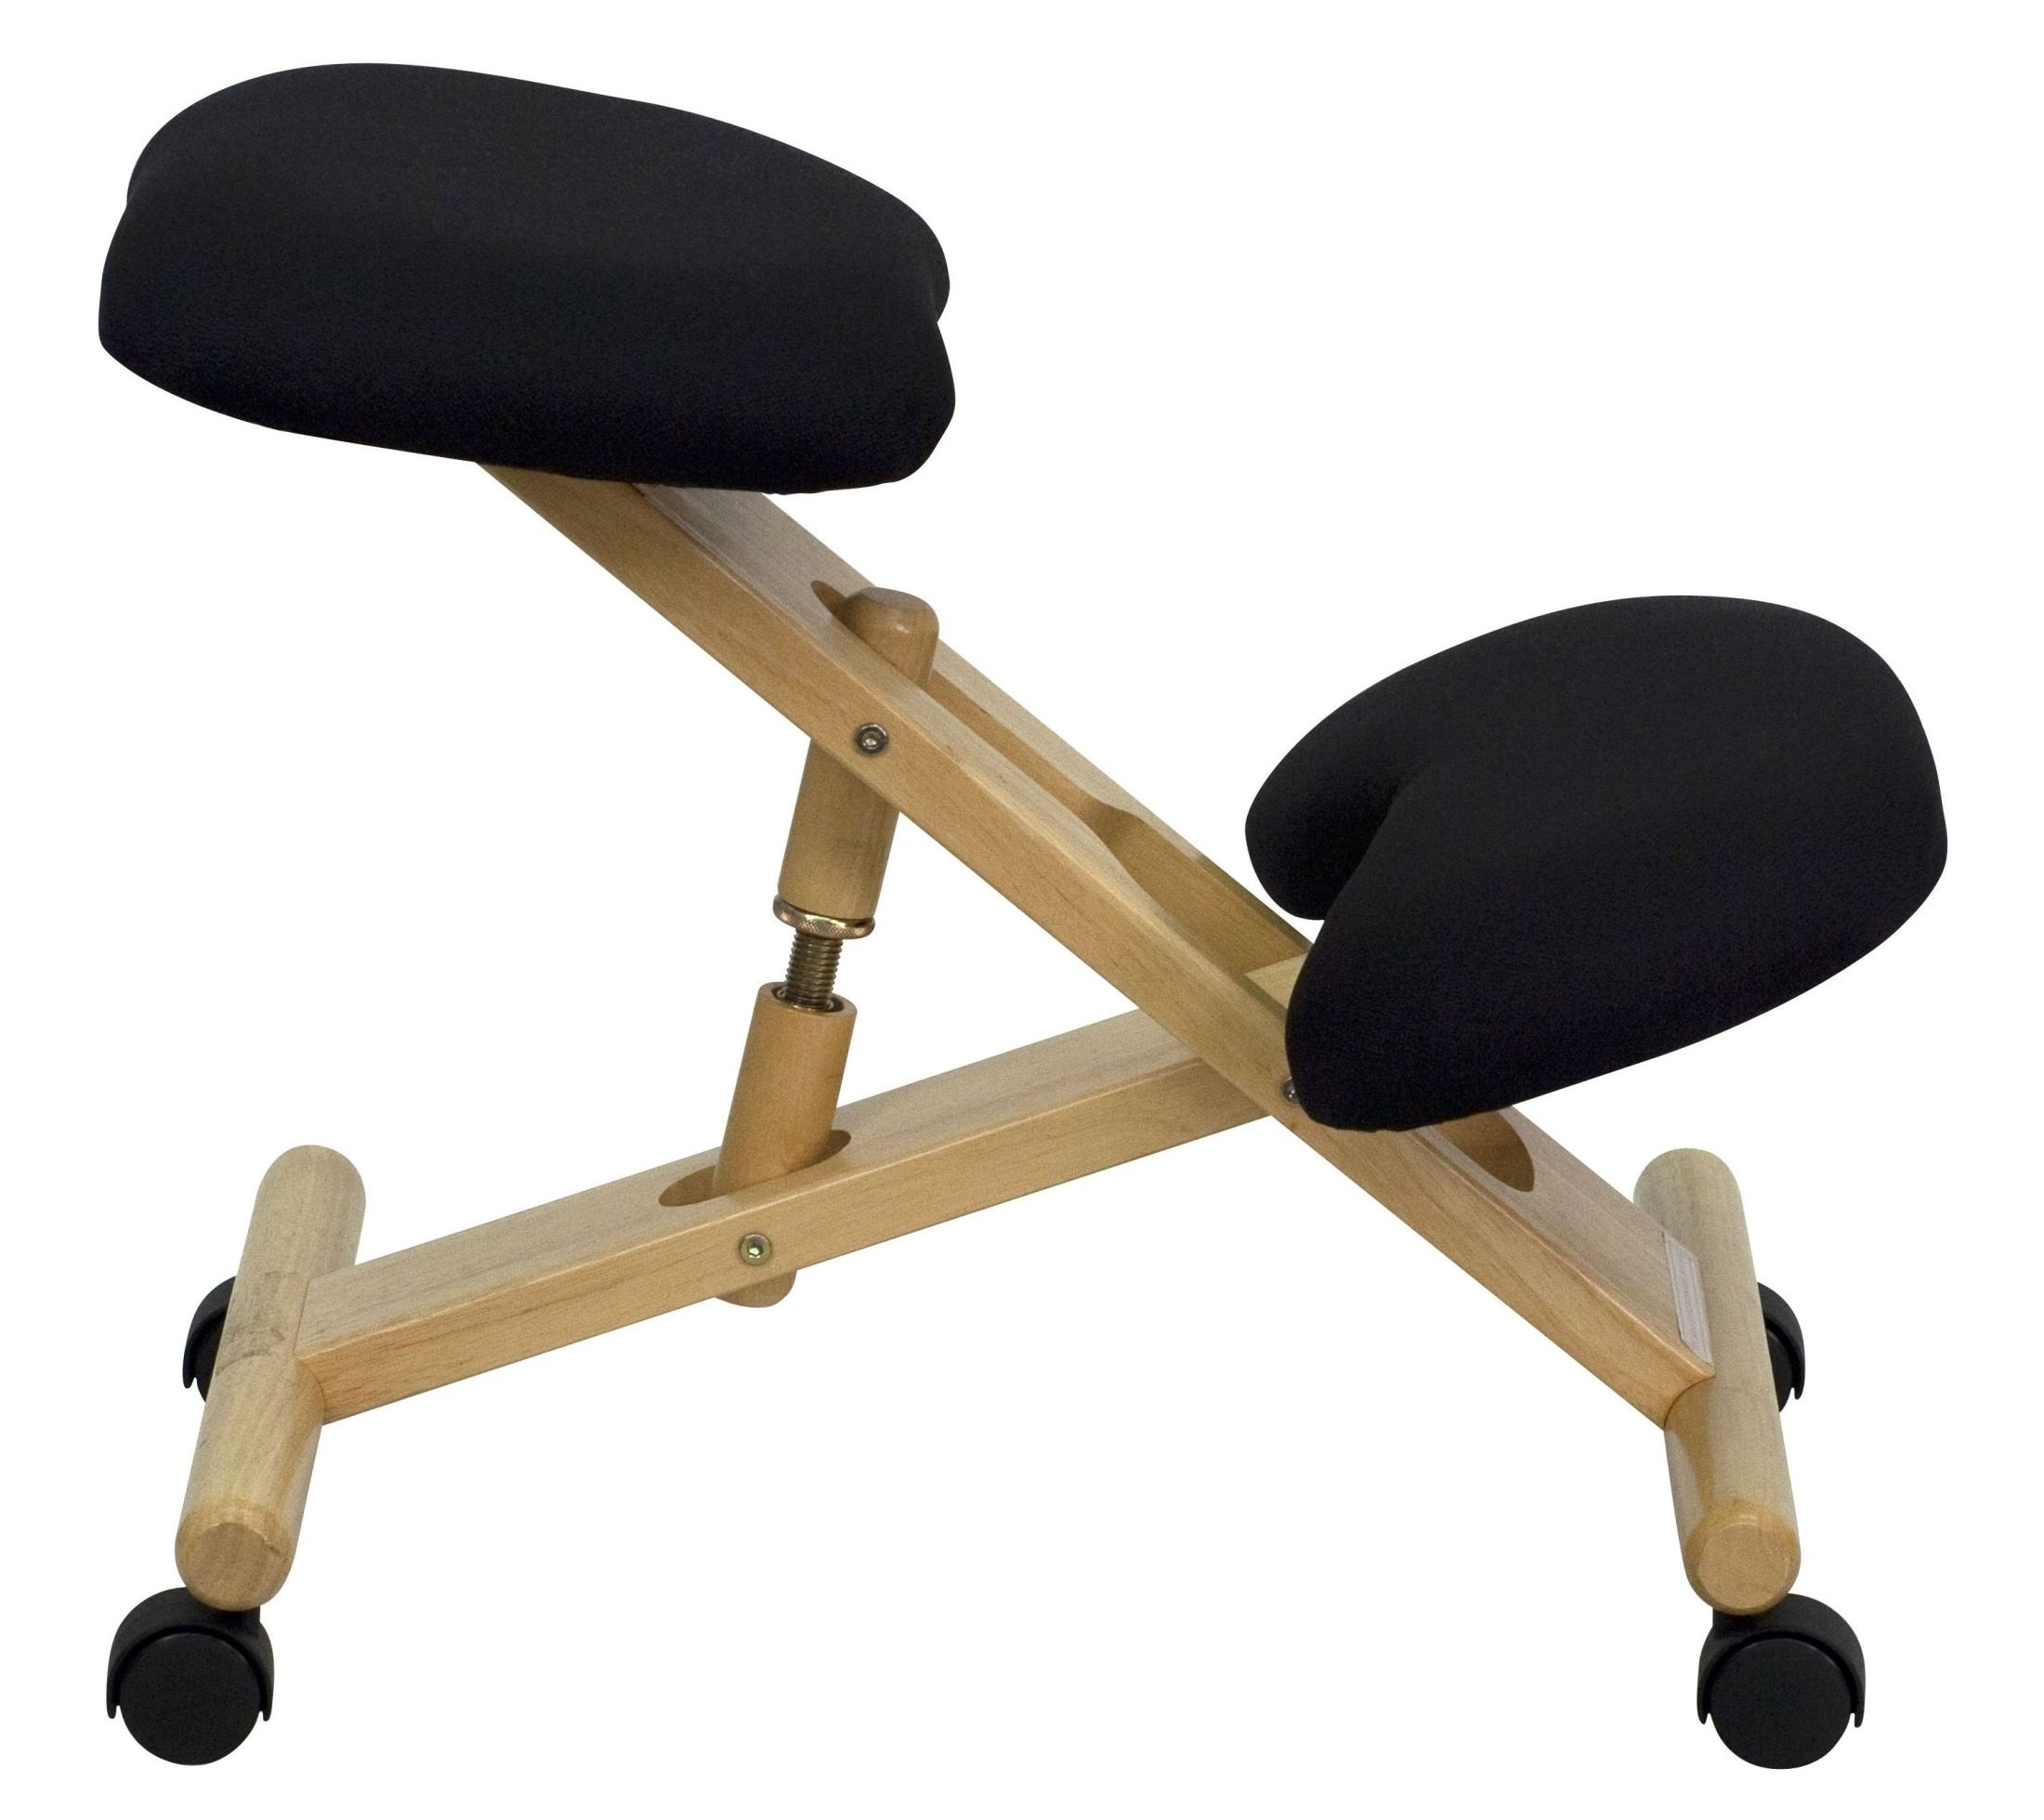 Ergonomic Chair Kneeling Mobile Wooden Ergonomic Kneeling Black Chair From Renegade